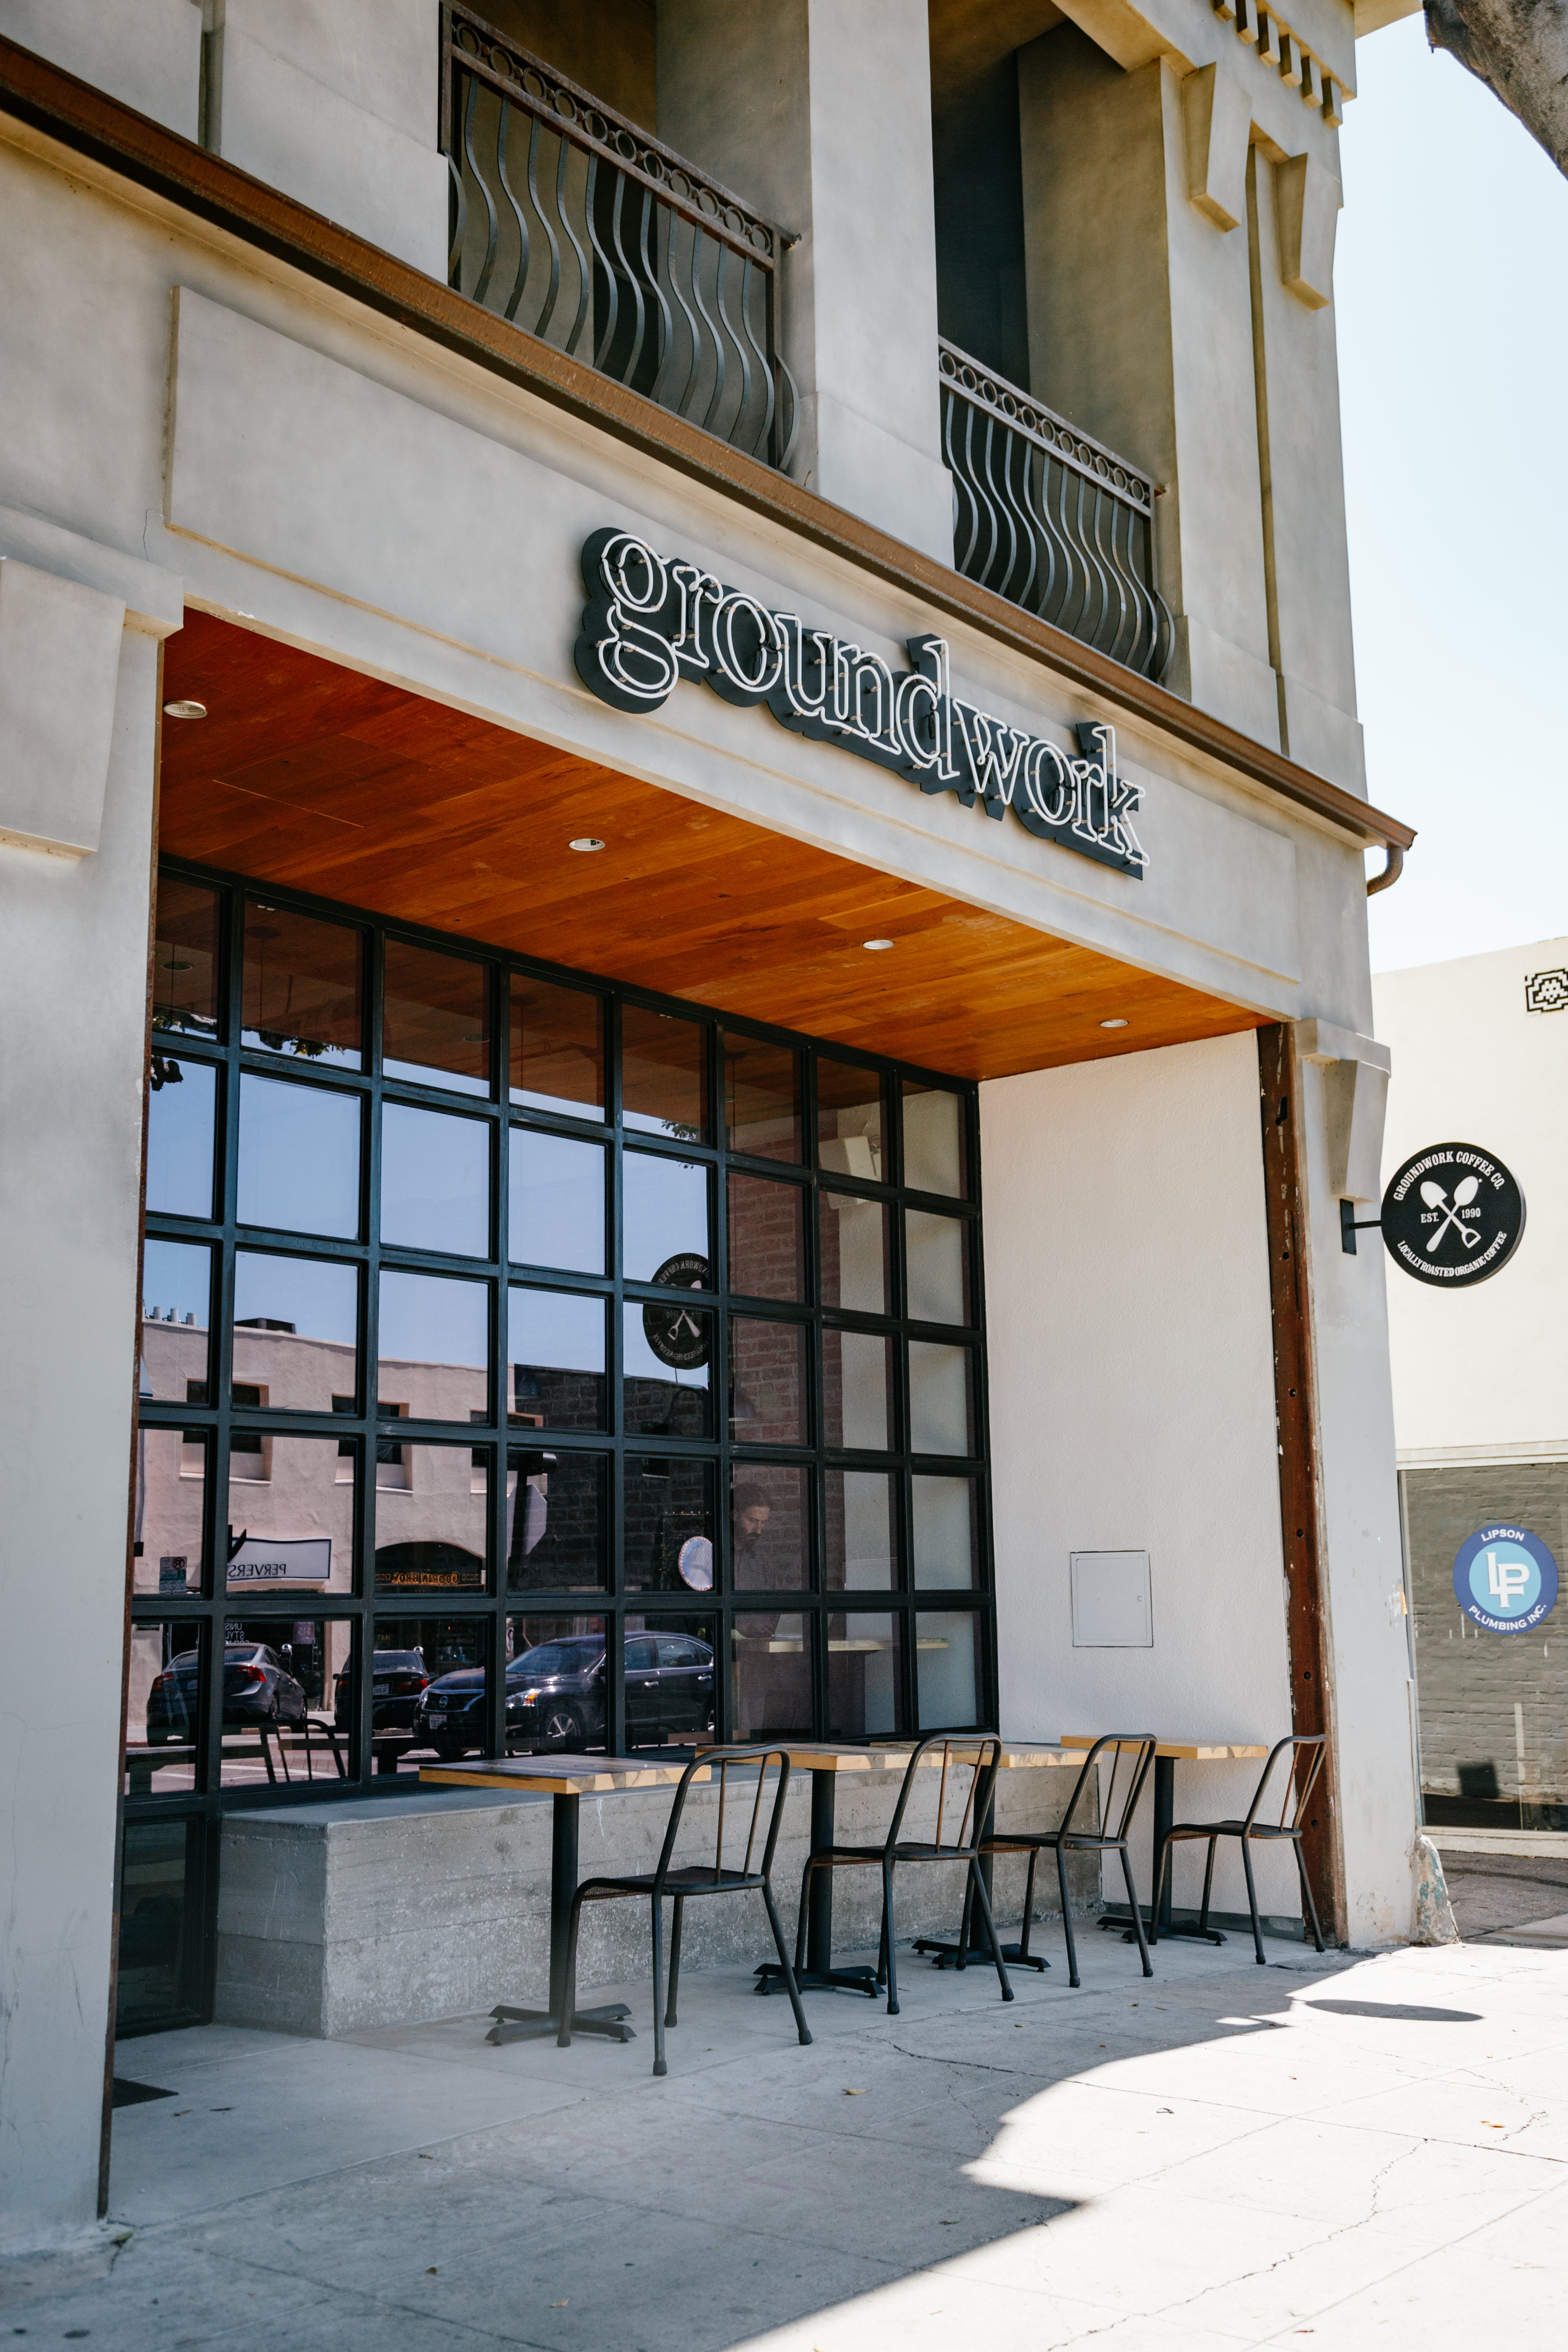 Groundwork Coffee Shop on Larchmont